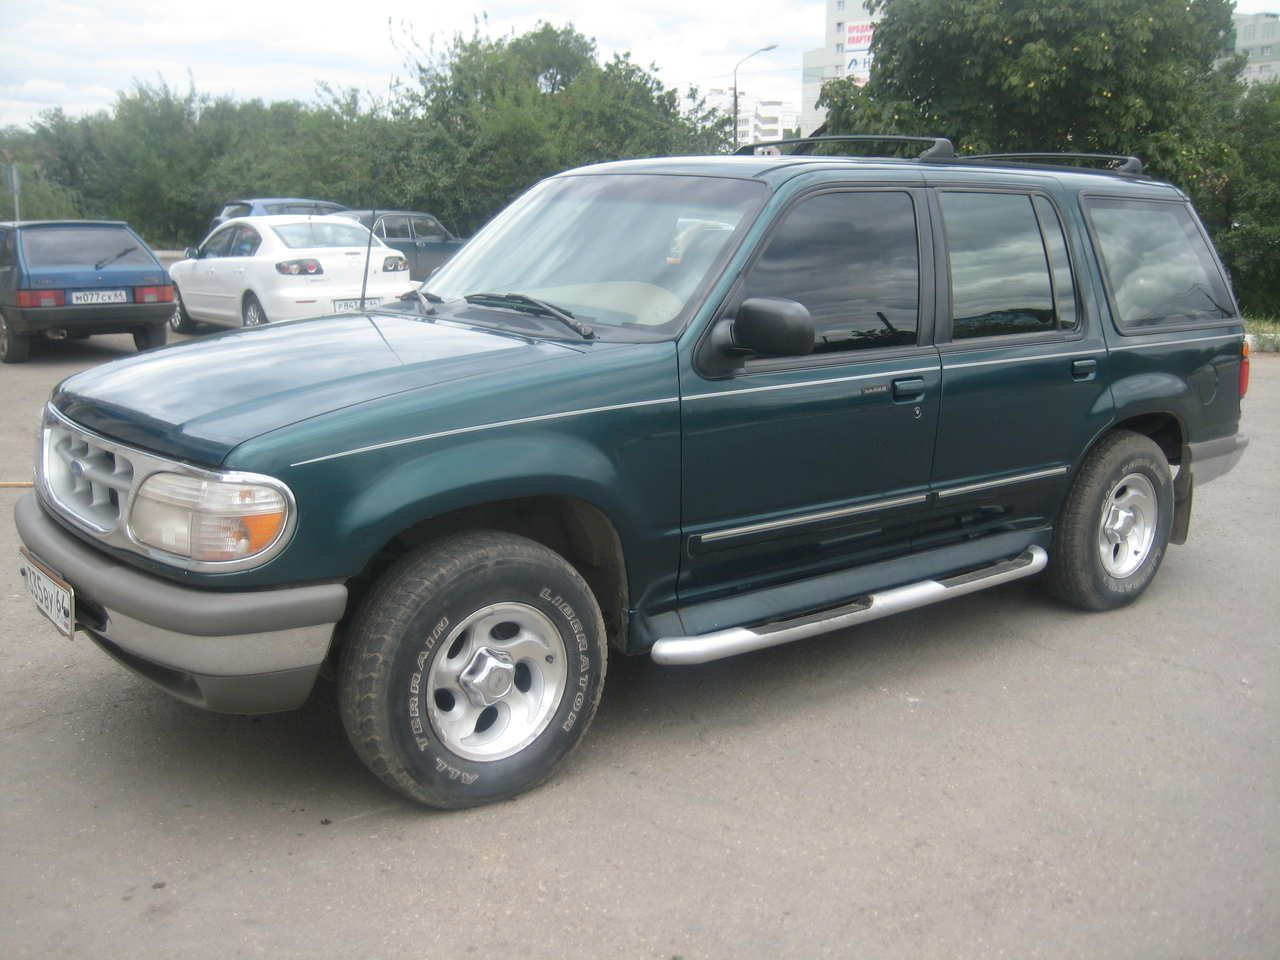 1995 ford explorer my grandpa had one of these its not the best car but it still gives me the warm fuzzies dream car for sure